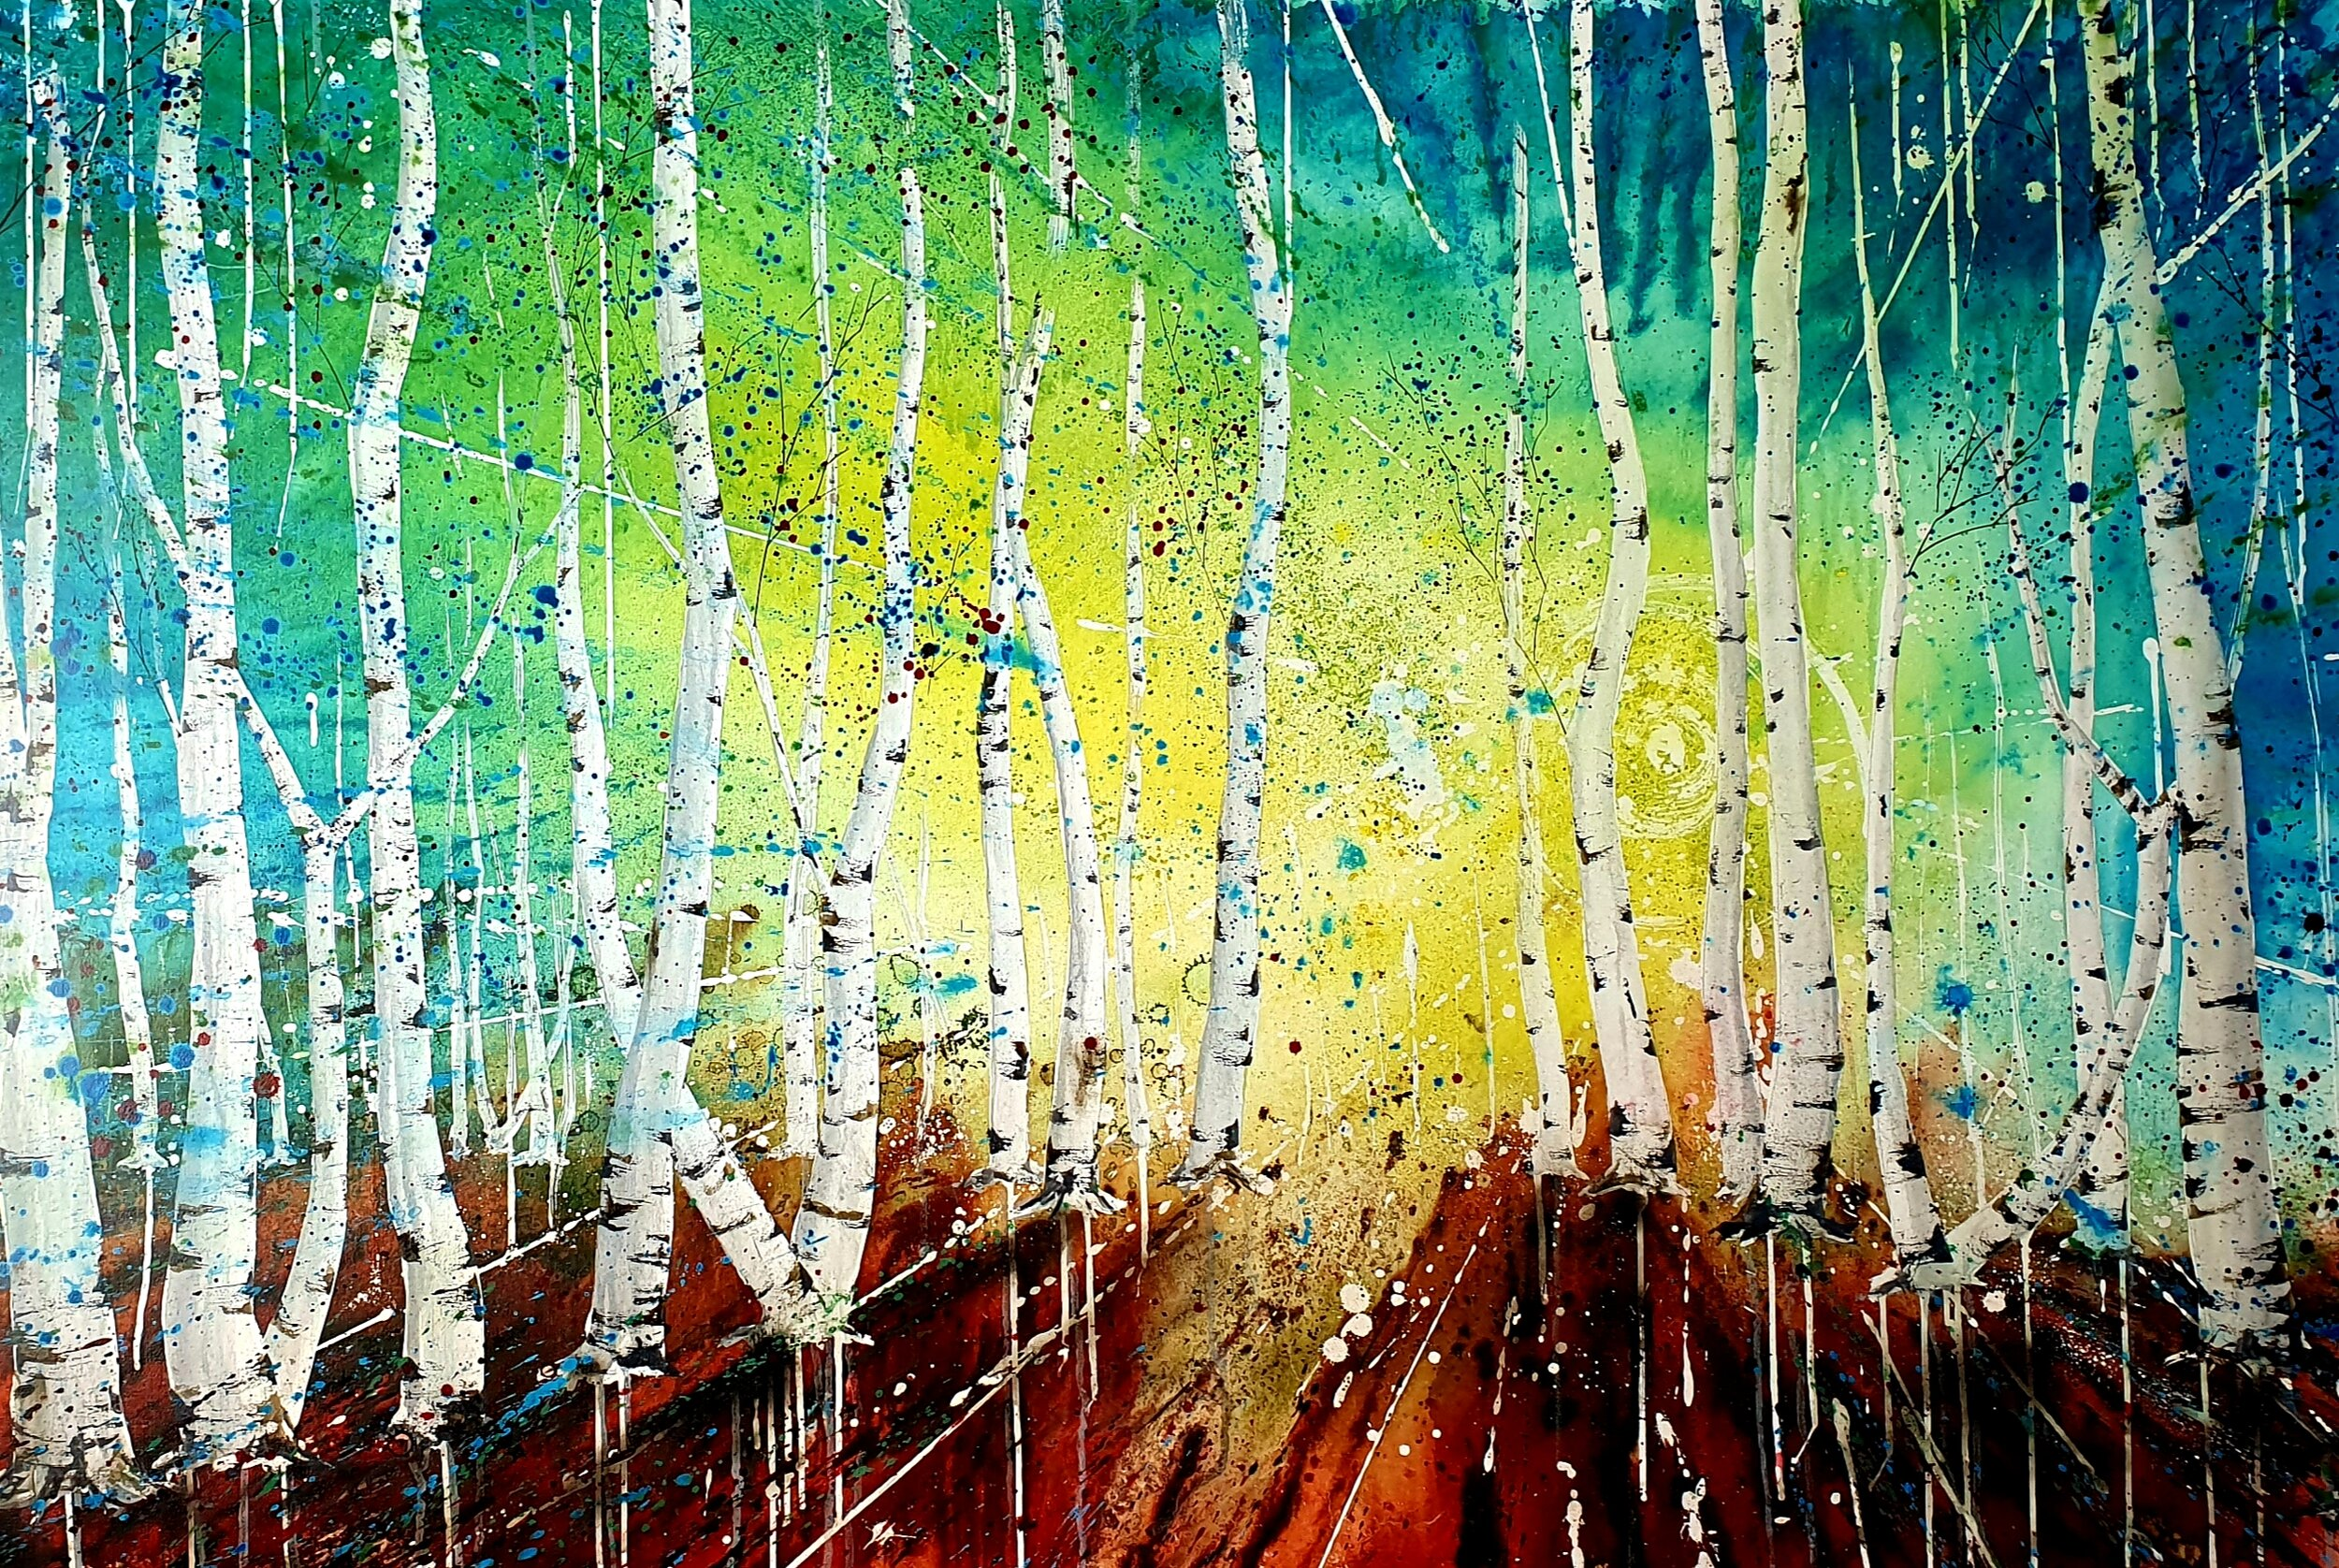 Silver Birches Sunburst 100 x 150cm Acrylic ink on stretched canvas